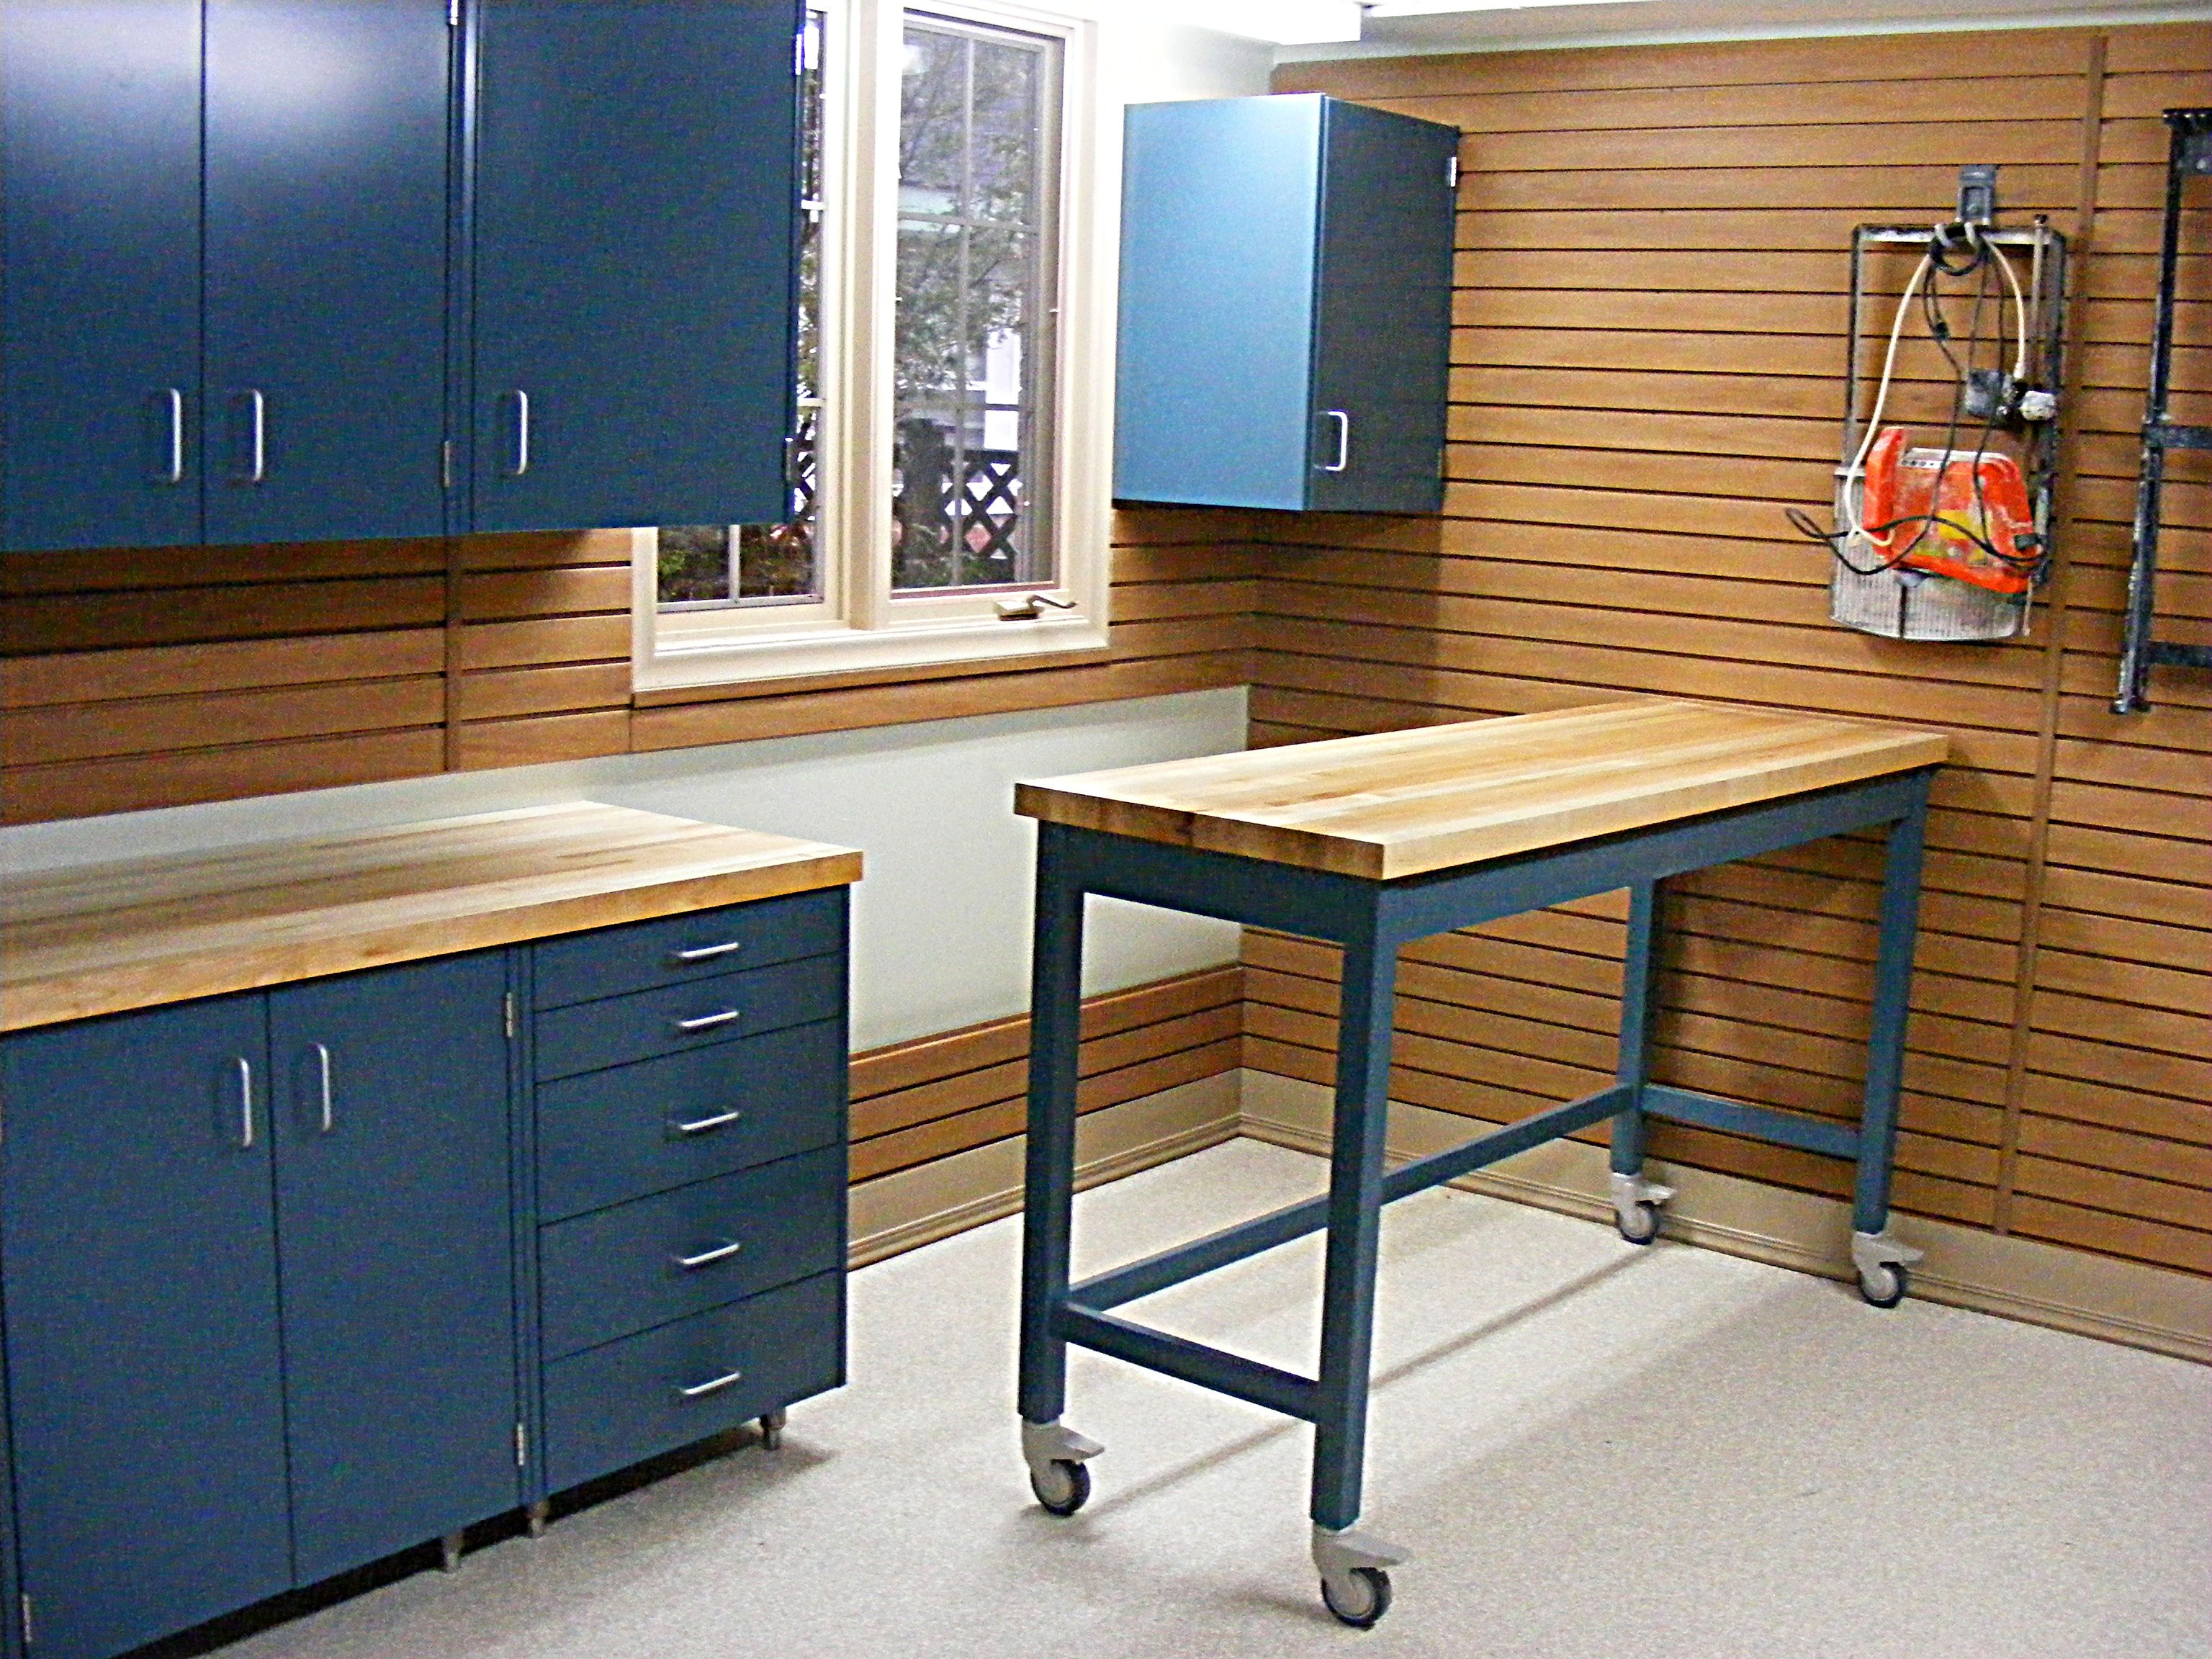 Workshop Countertop Garage Blue Color Of Garage Shelves Made From Metal